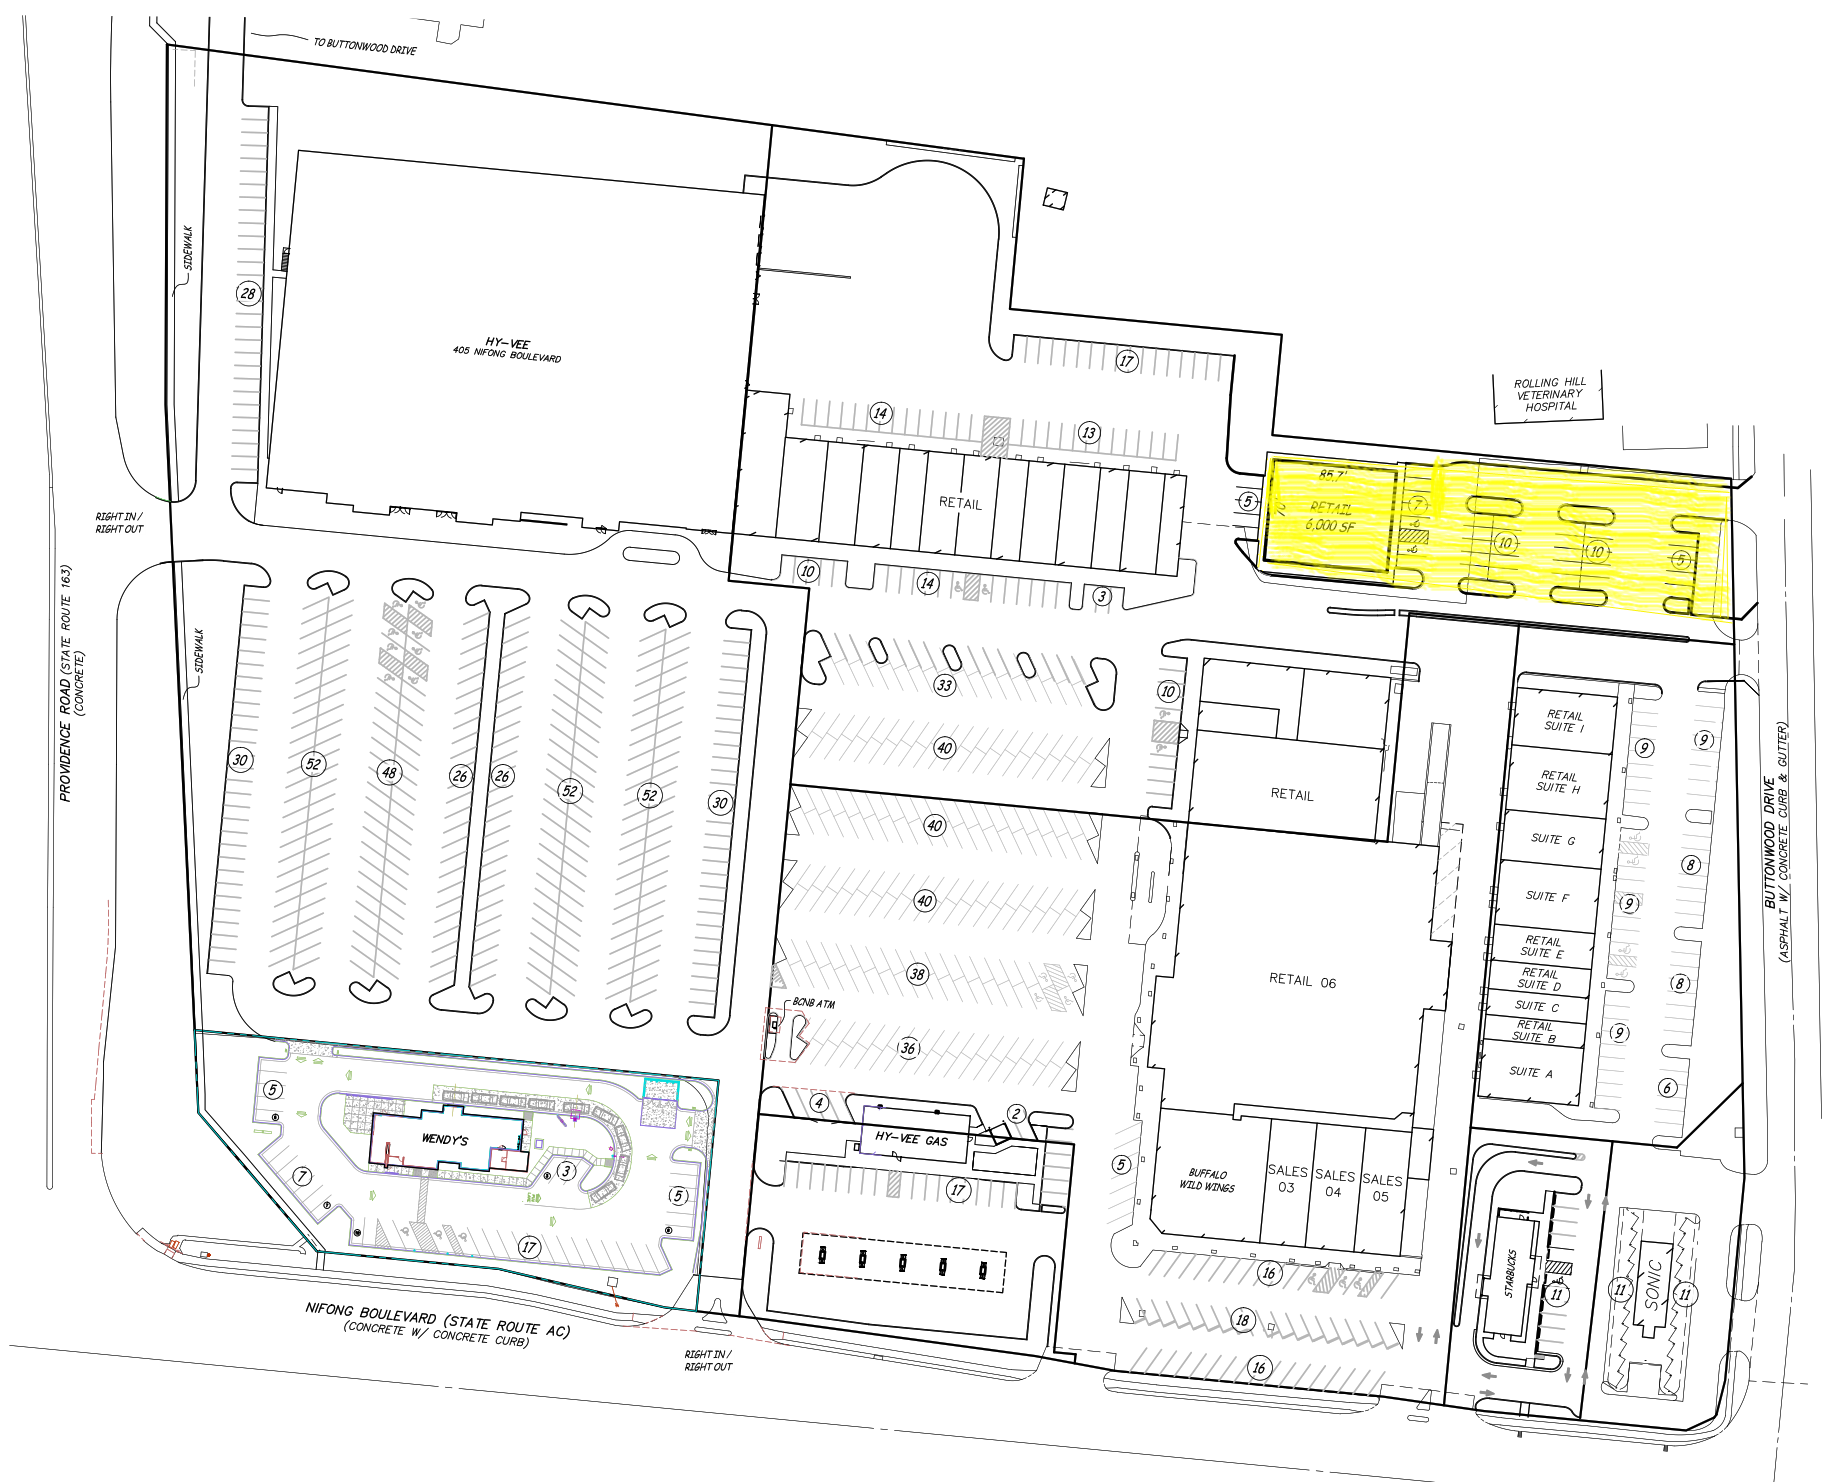 Rock Bridge Shopping Center-6000 SF Future Build